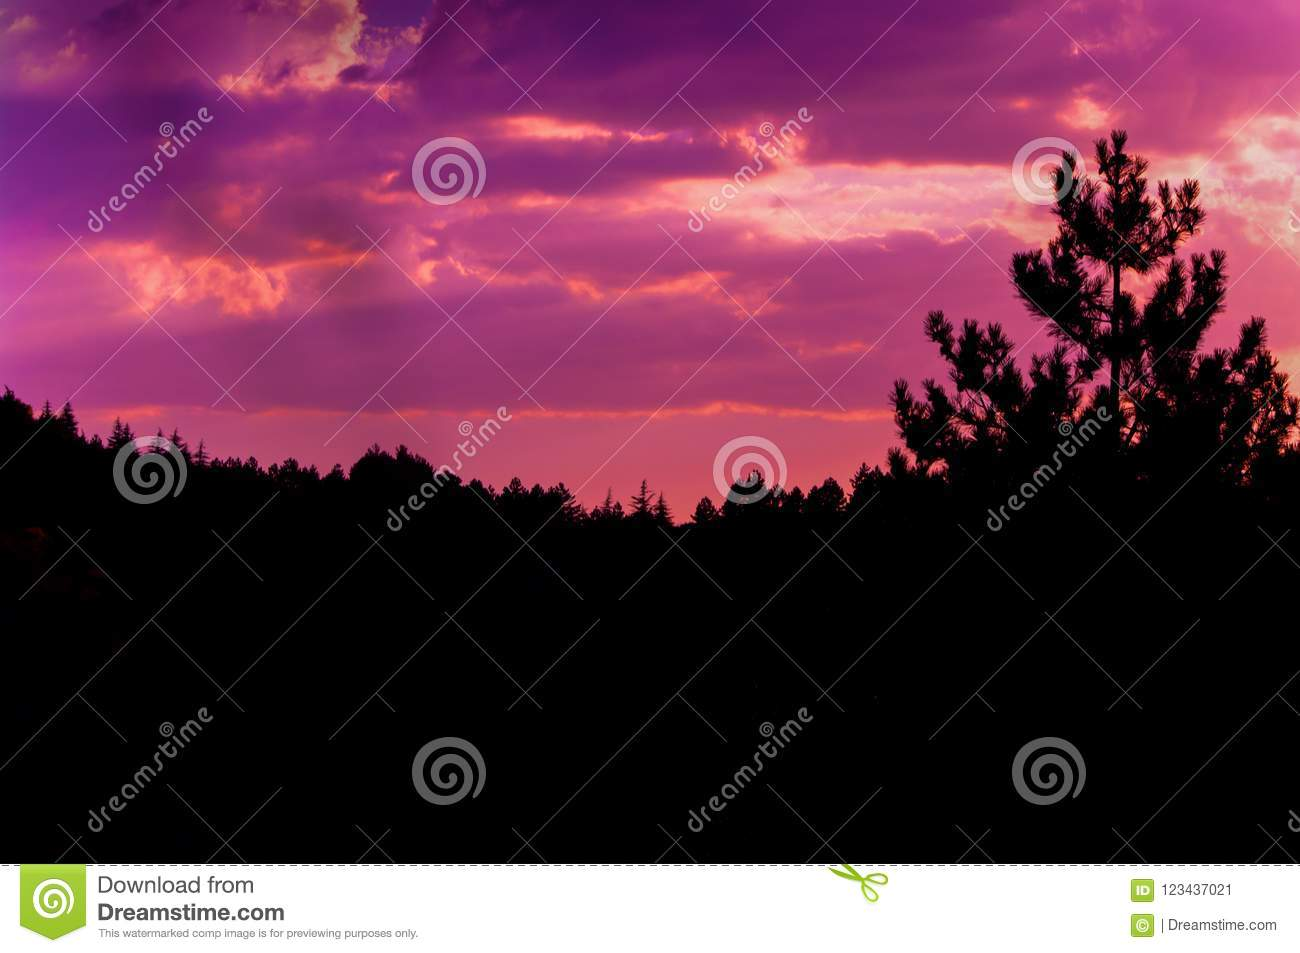 Pinkish sunset sky and clouds photo at pine forest